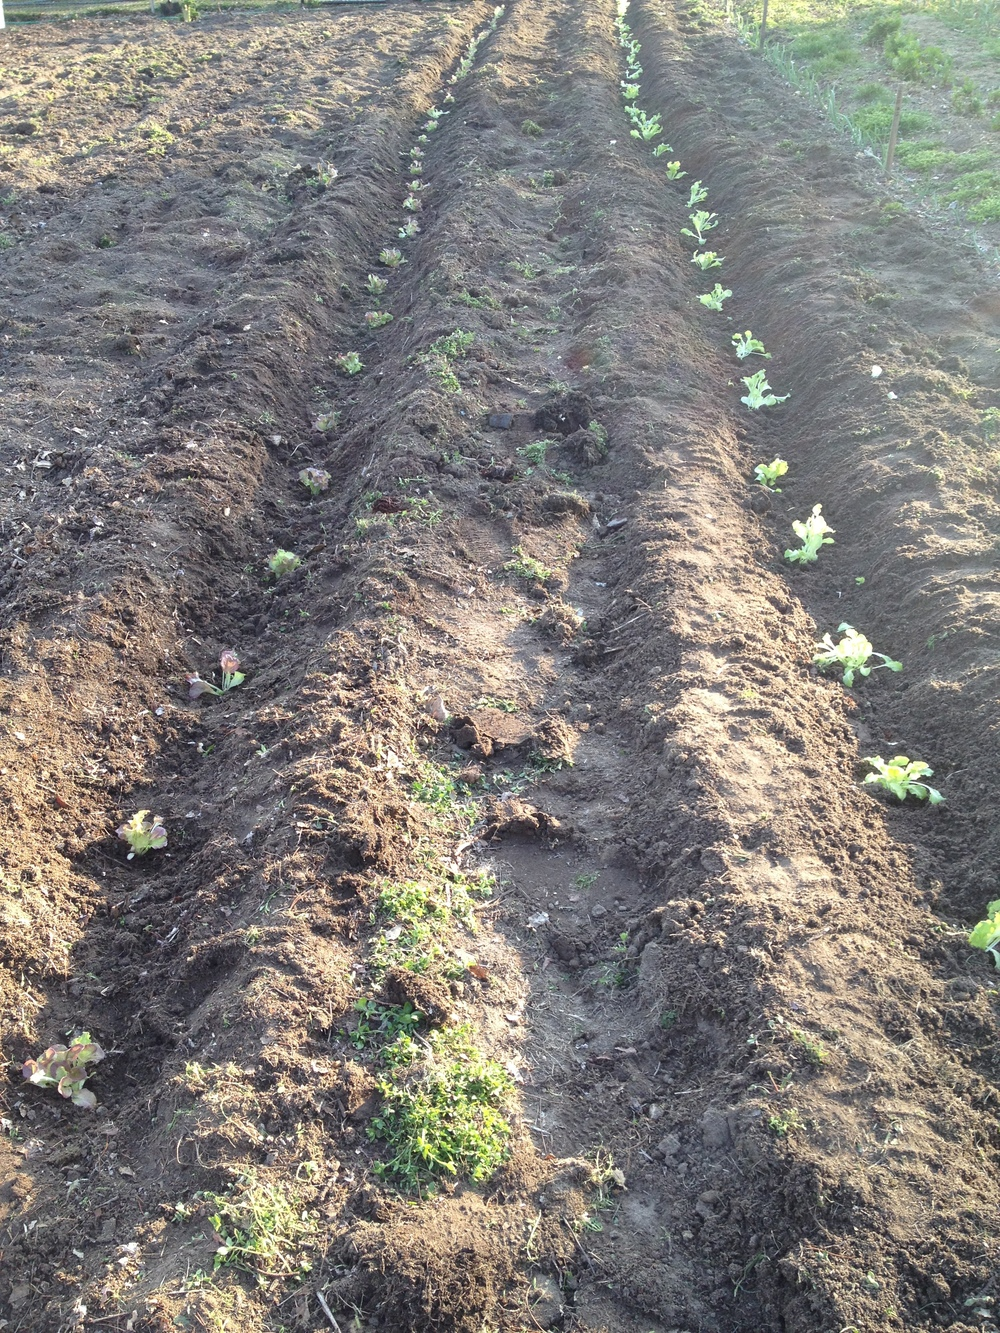 Some newly planted green leaf lettuce